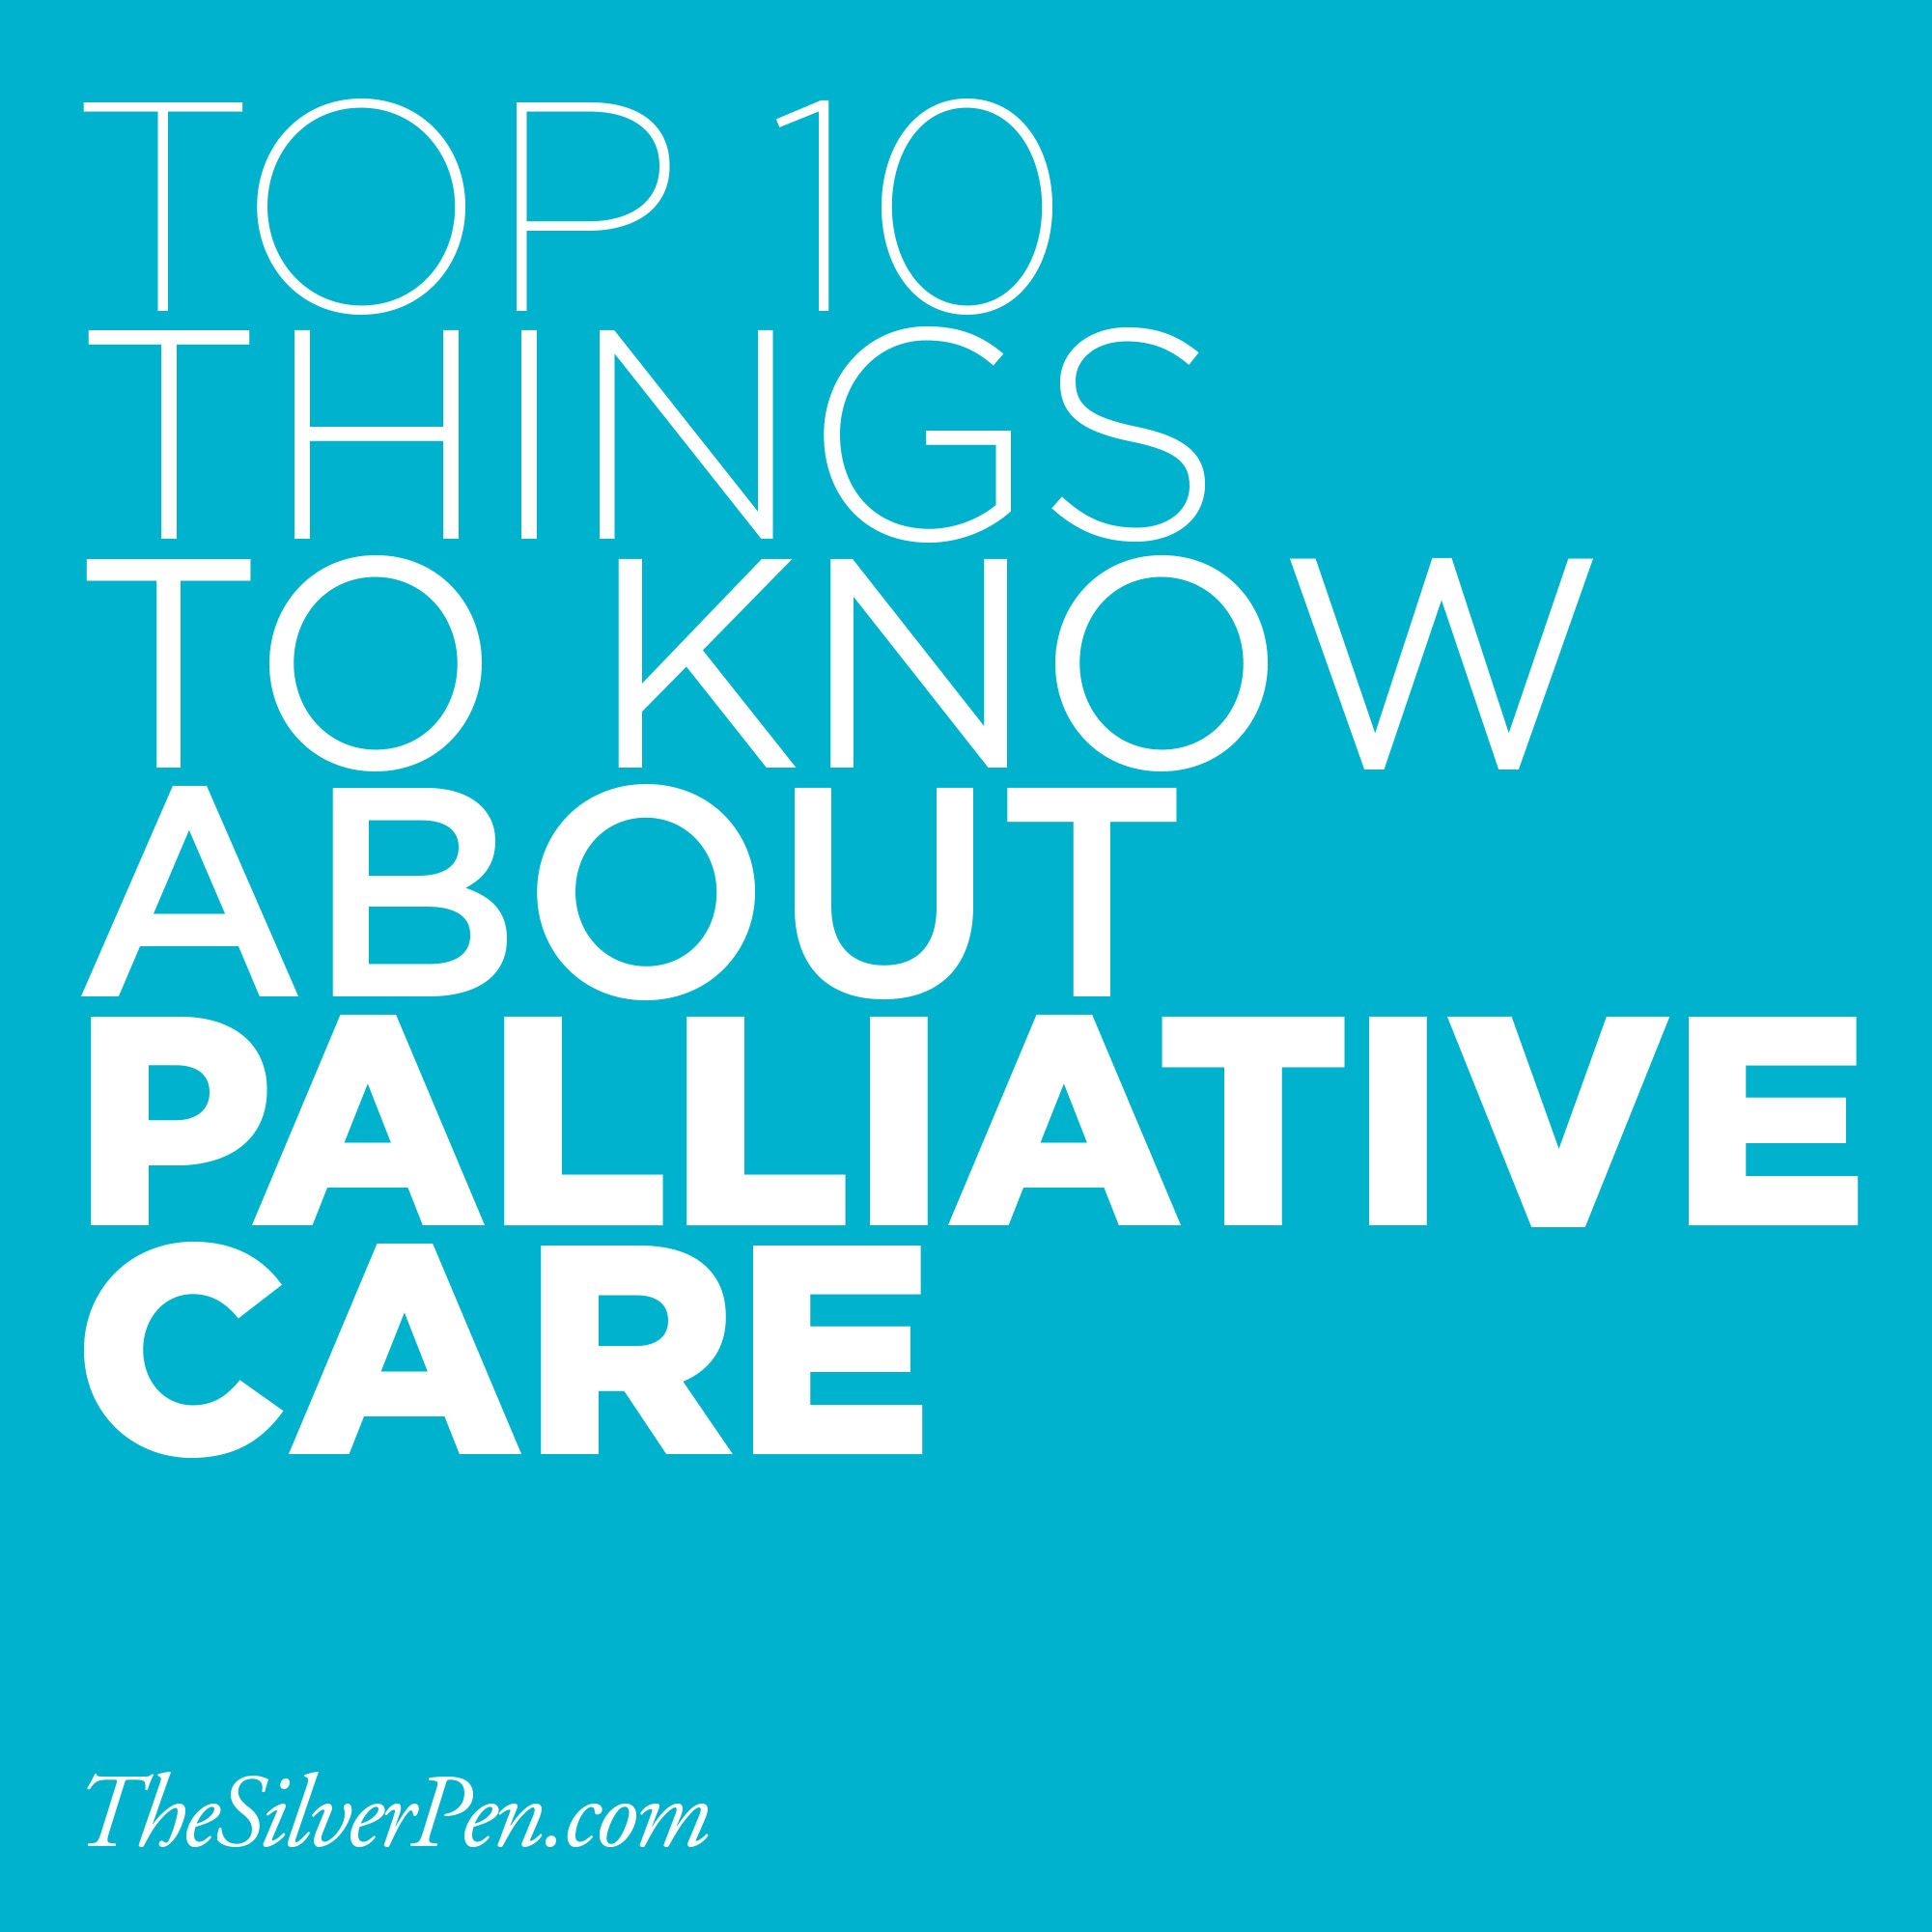 Top 10 Things to Know About Palliative Care Home health